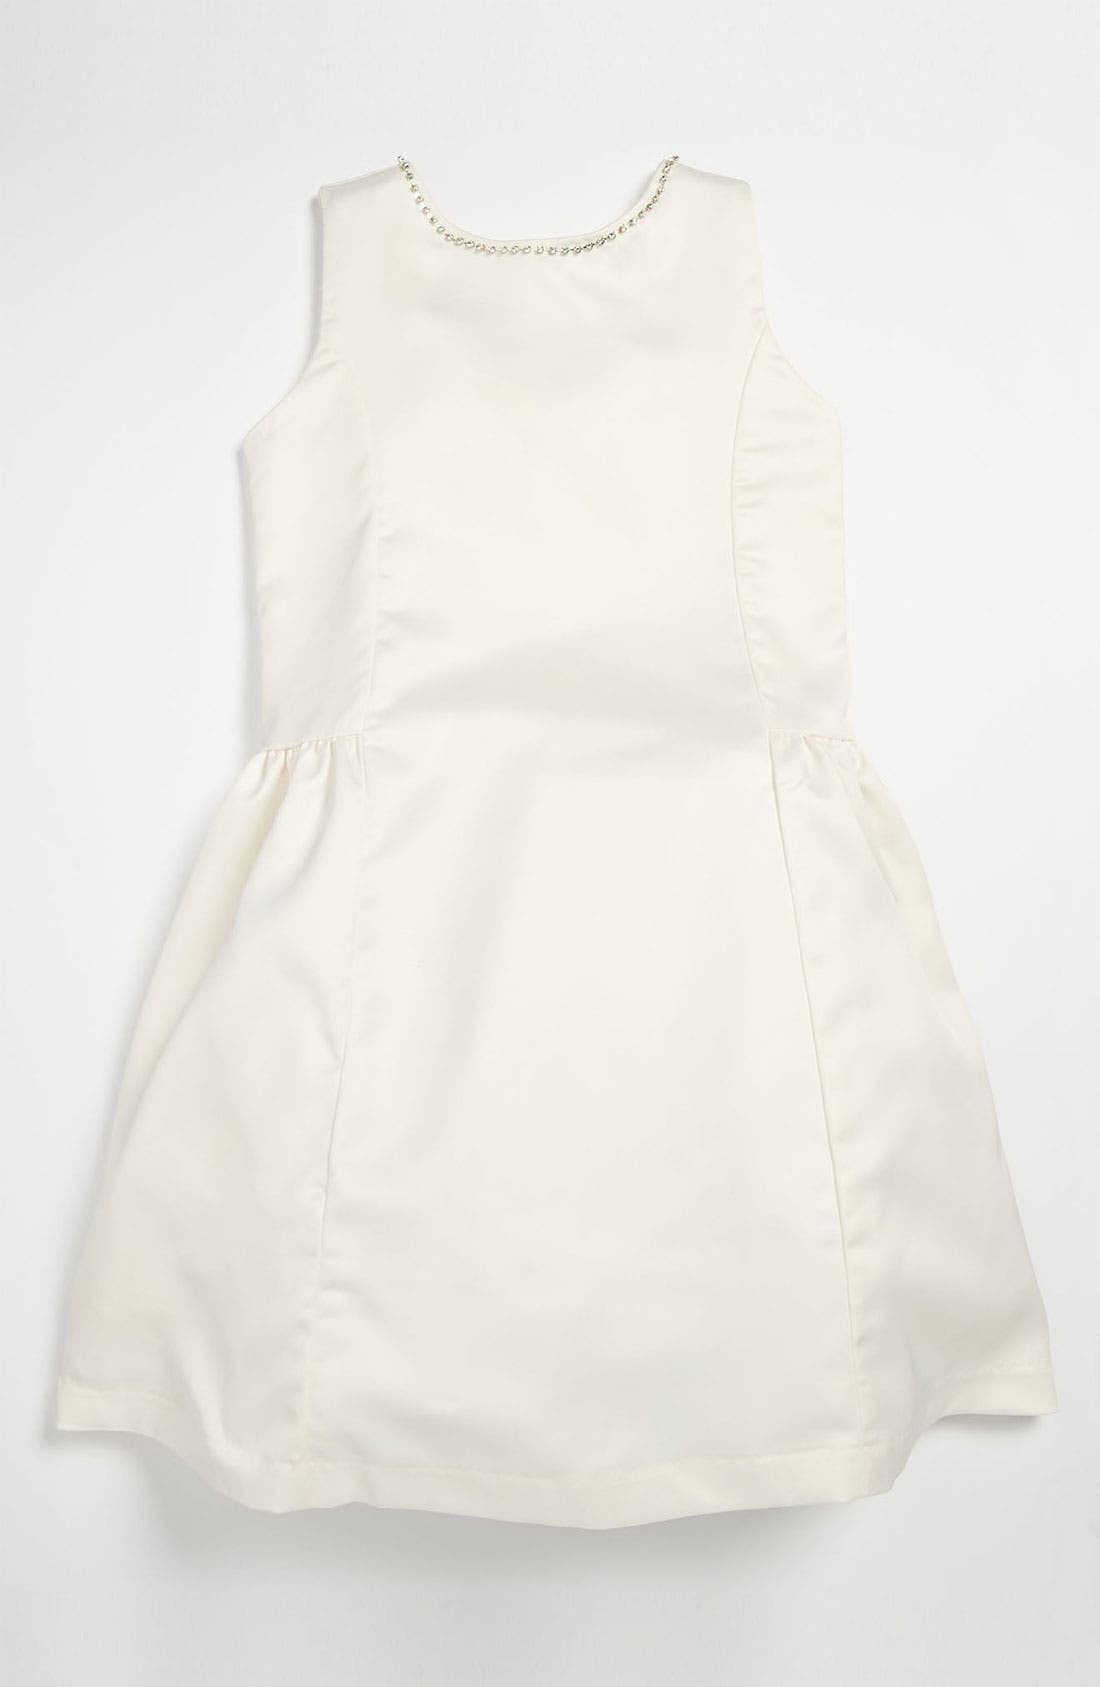 Main Image - La Piccola Danza Kidswear Bow Back Dress (Little Girls & Big Girls)